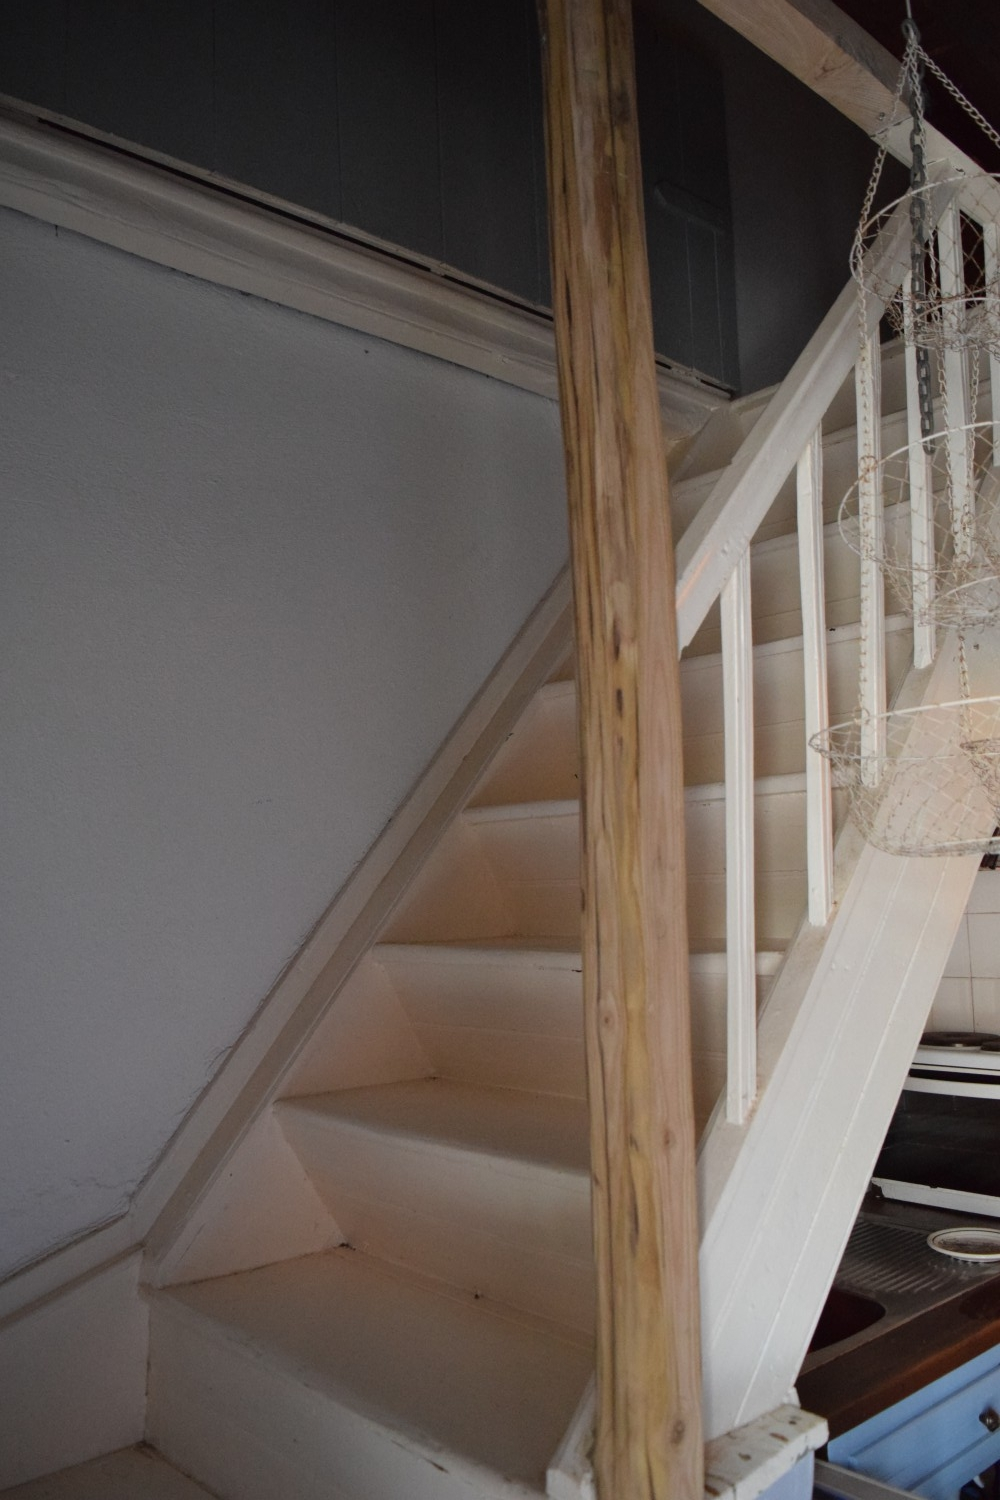 romantic_house_with_amazing-view_staircase_2.jpg